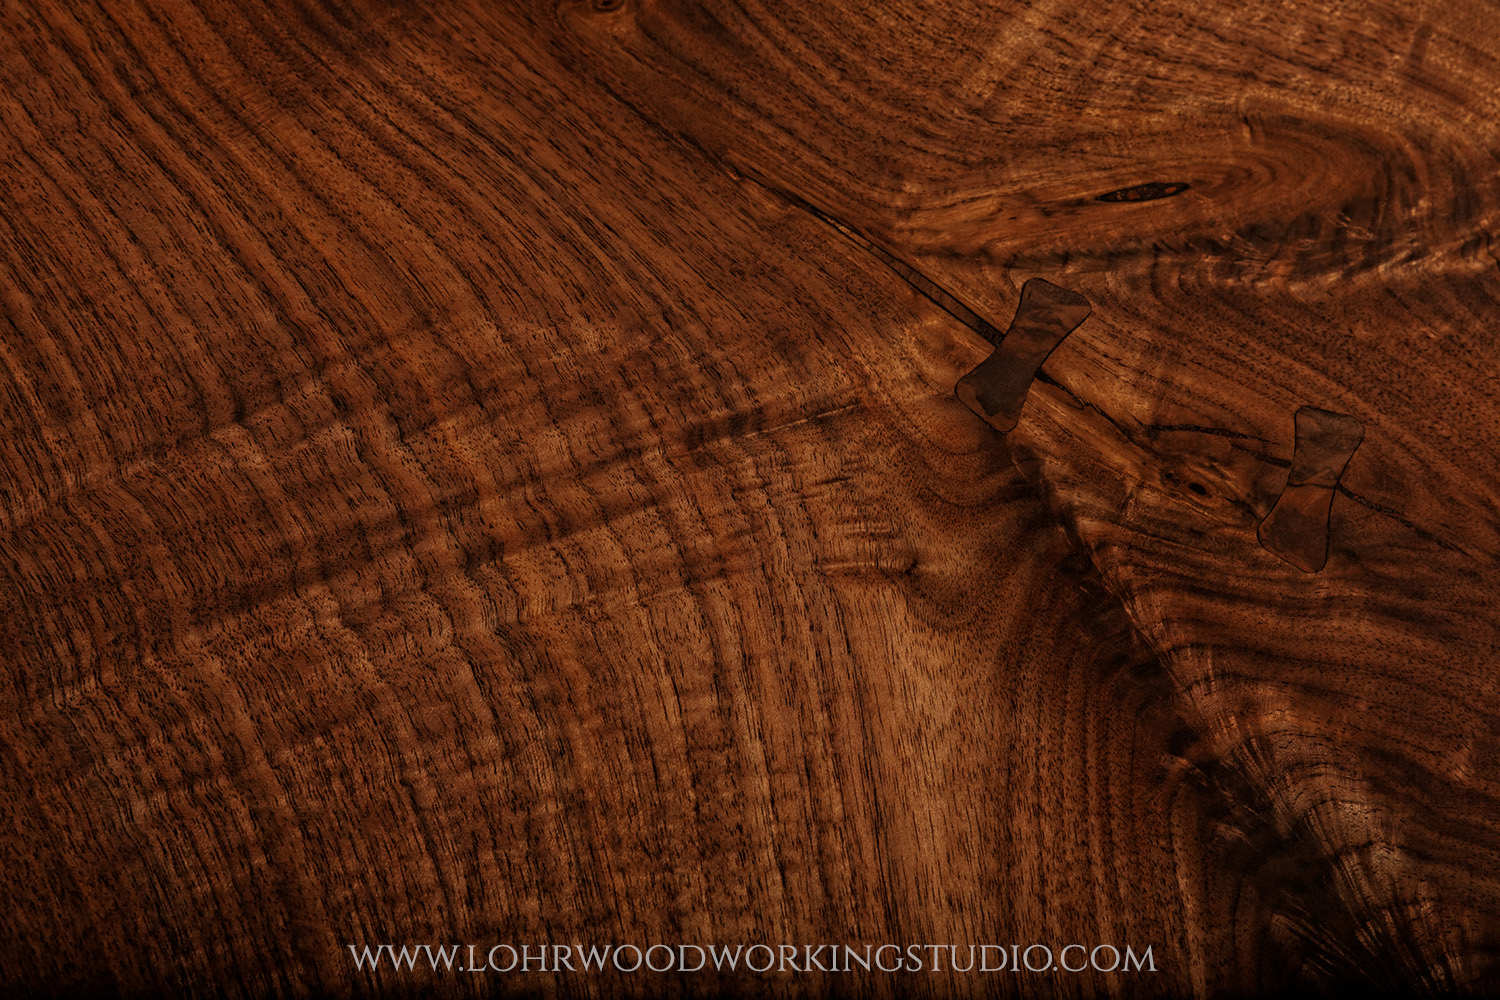 Live Edge Walnut Desk Grain Detail